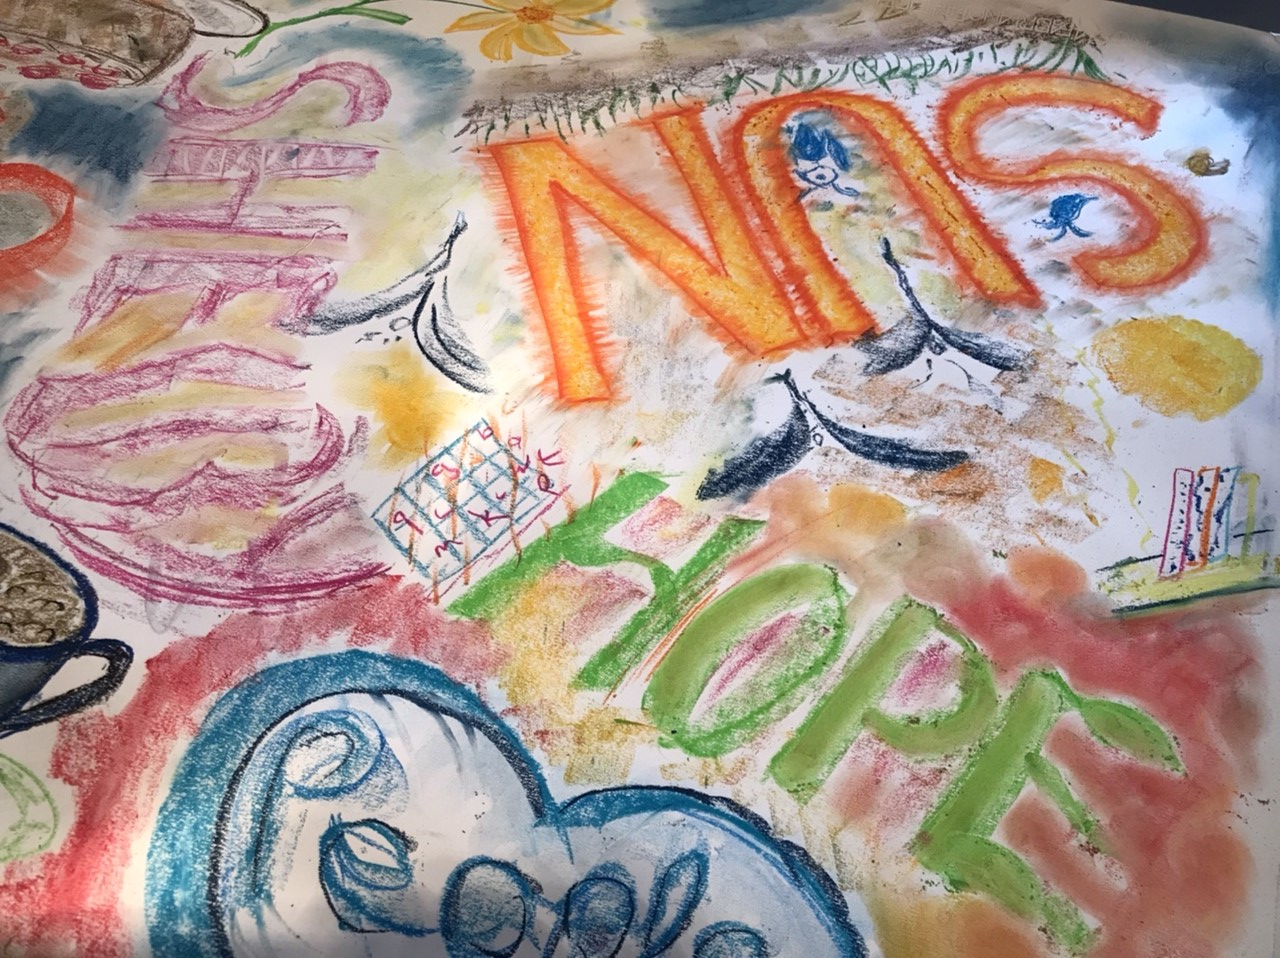 """A photo from one of the taster workshops. For this workshop, the group were trying pastels. In this photo, a large piece of paper has been covered in drawings in pastel, including images of coffee cups, flowers and words like """"sun"""" and """"hope""""."""